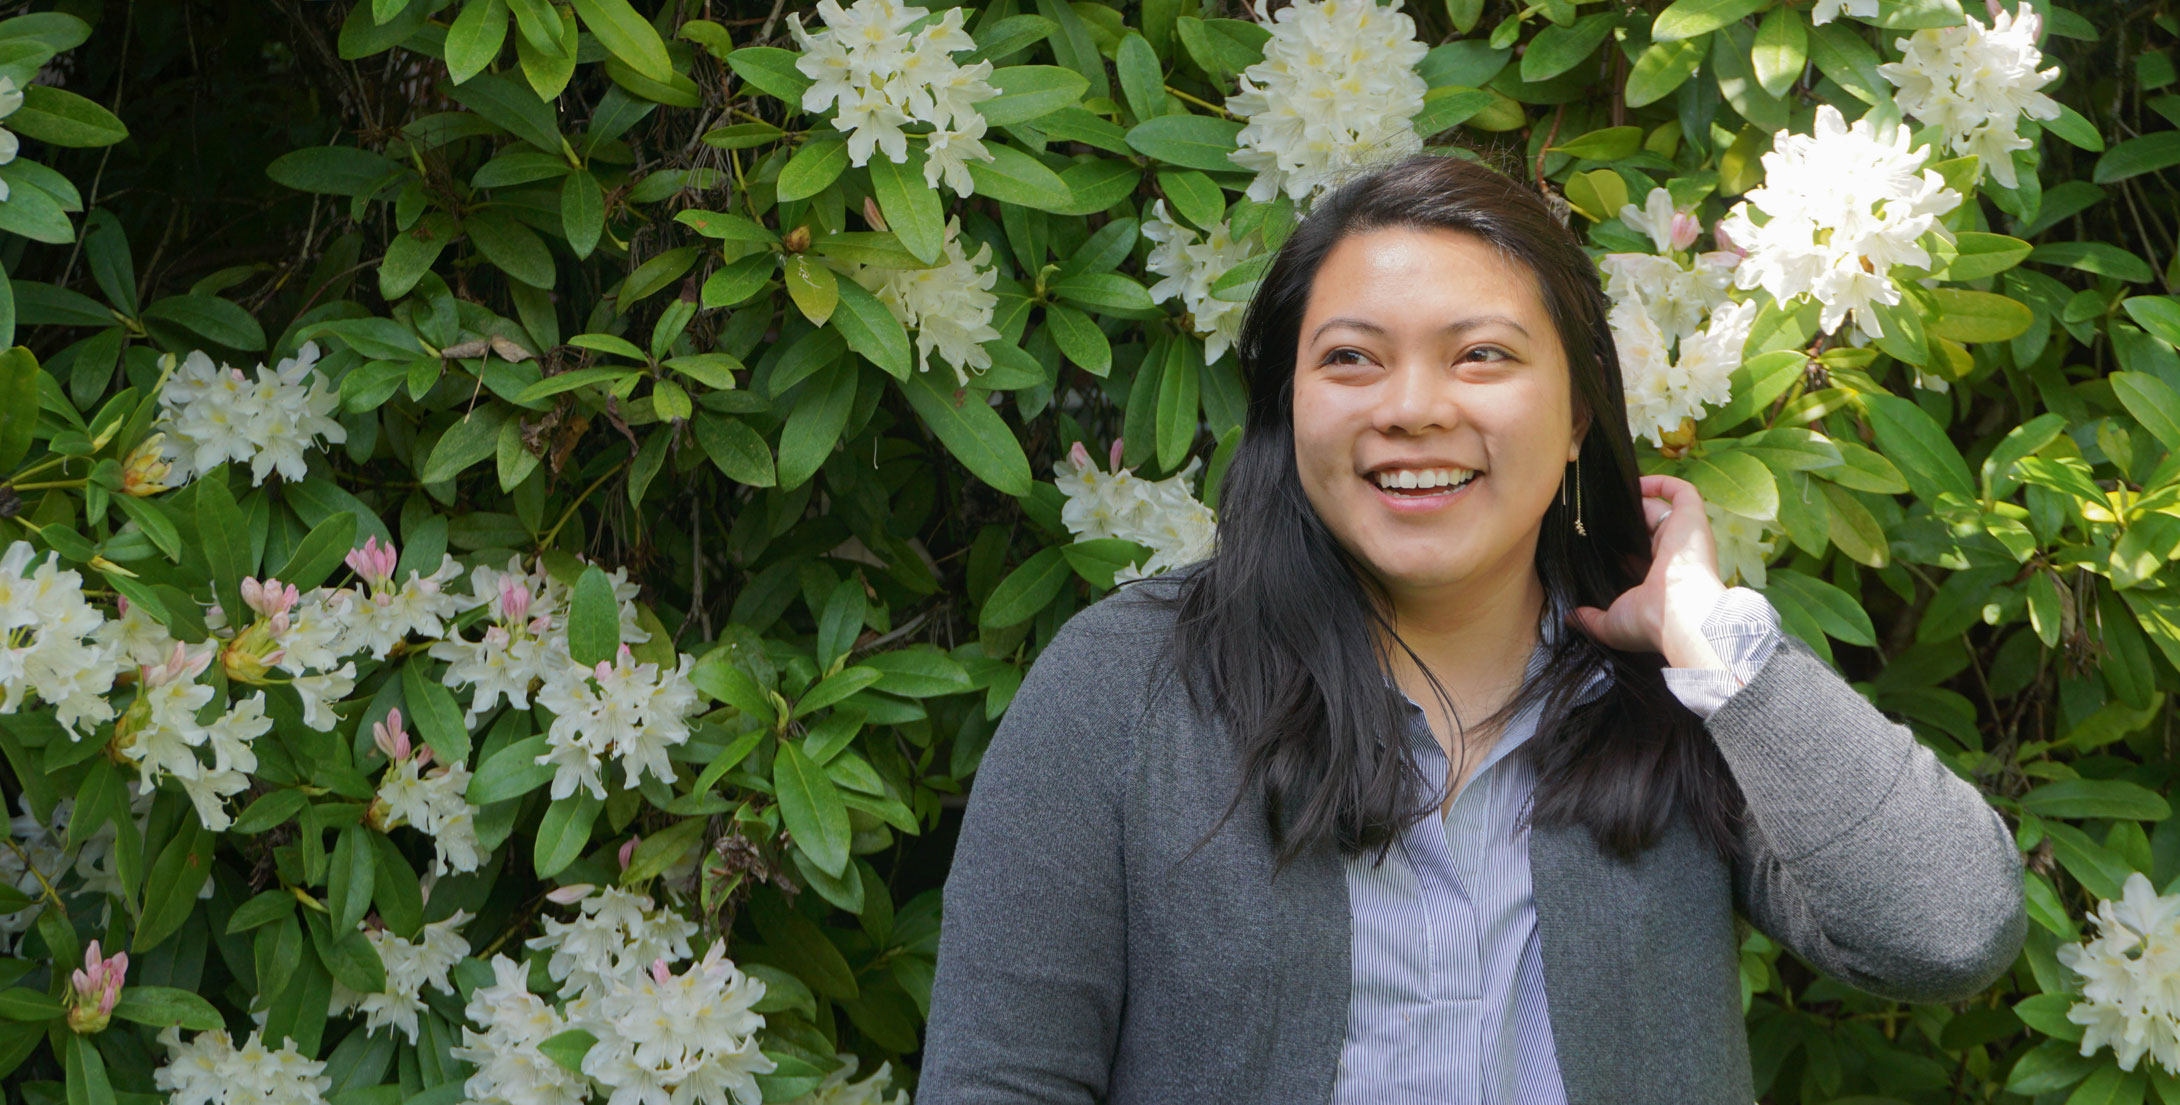 Photo of Sydney Phu in front of flower bush